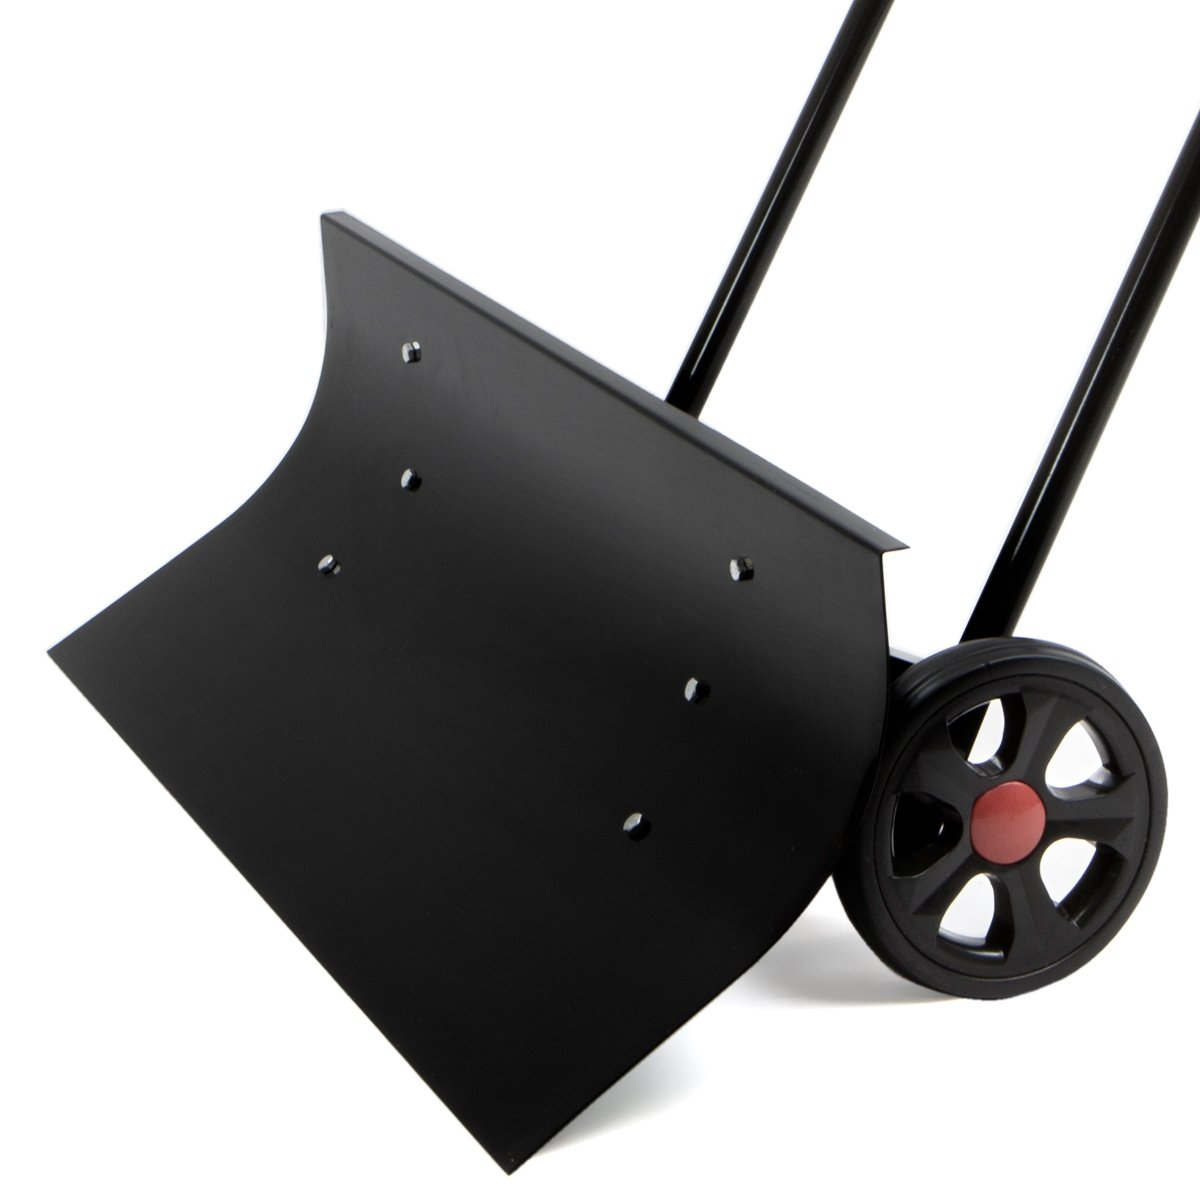 XtremepowerUS Wheeled Snow Shovel Pusher Bi-Directional, Black